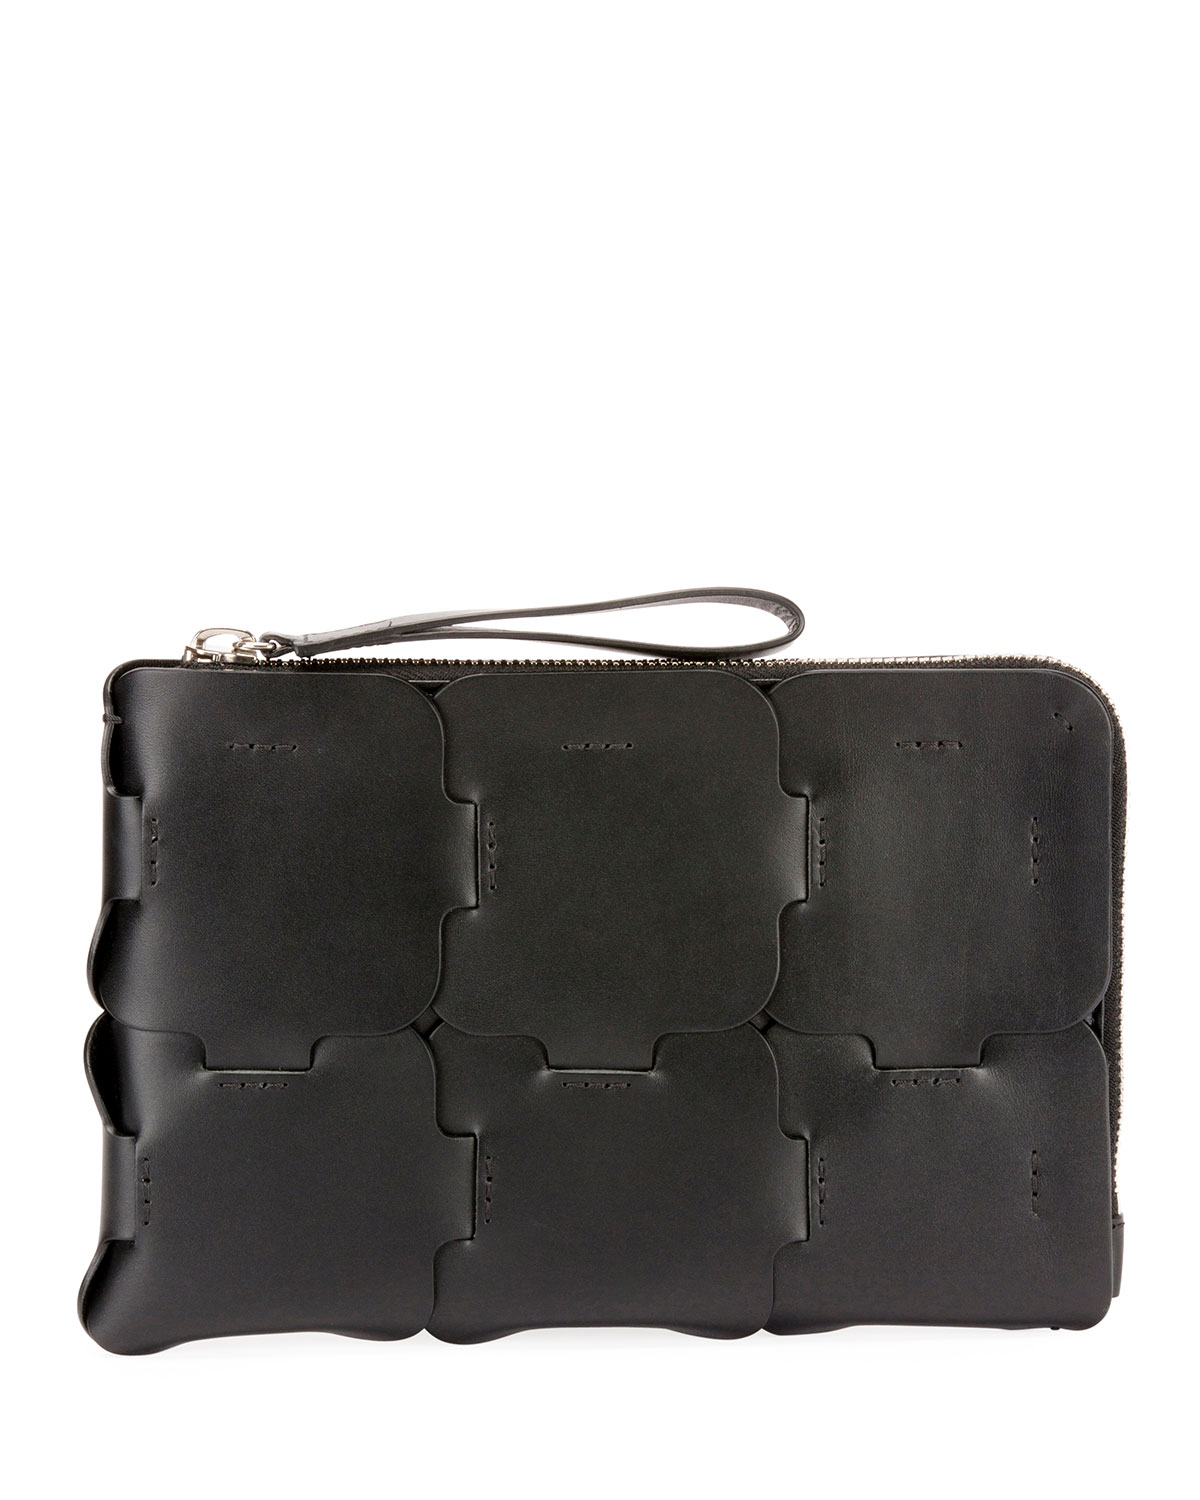 Zipped Leather Clutch Bag